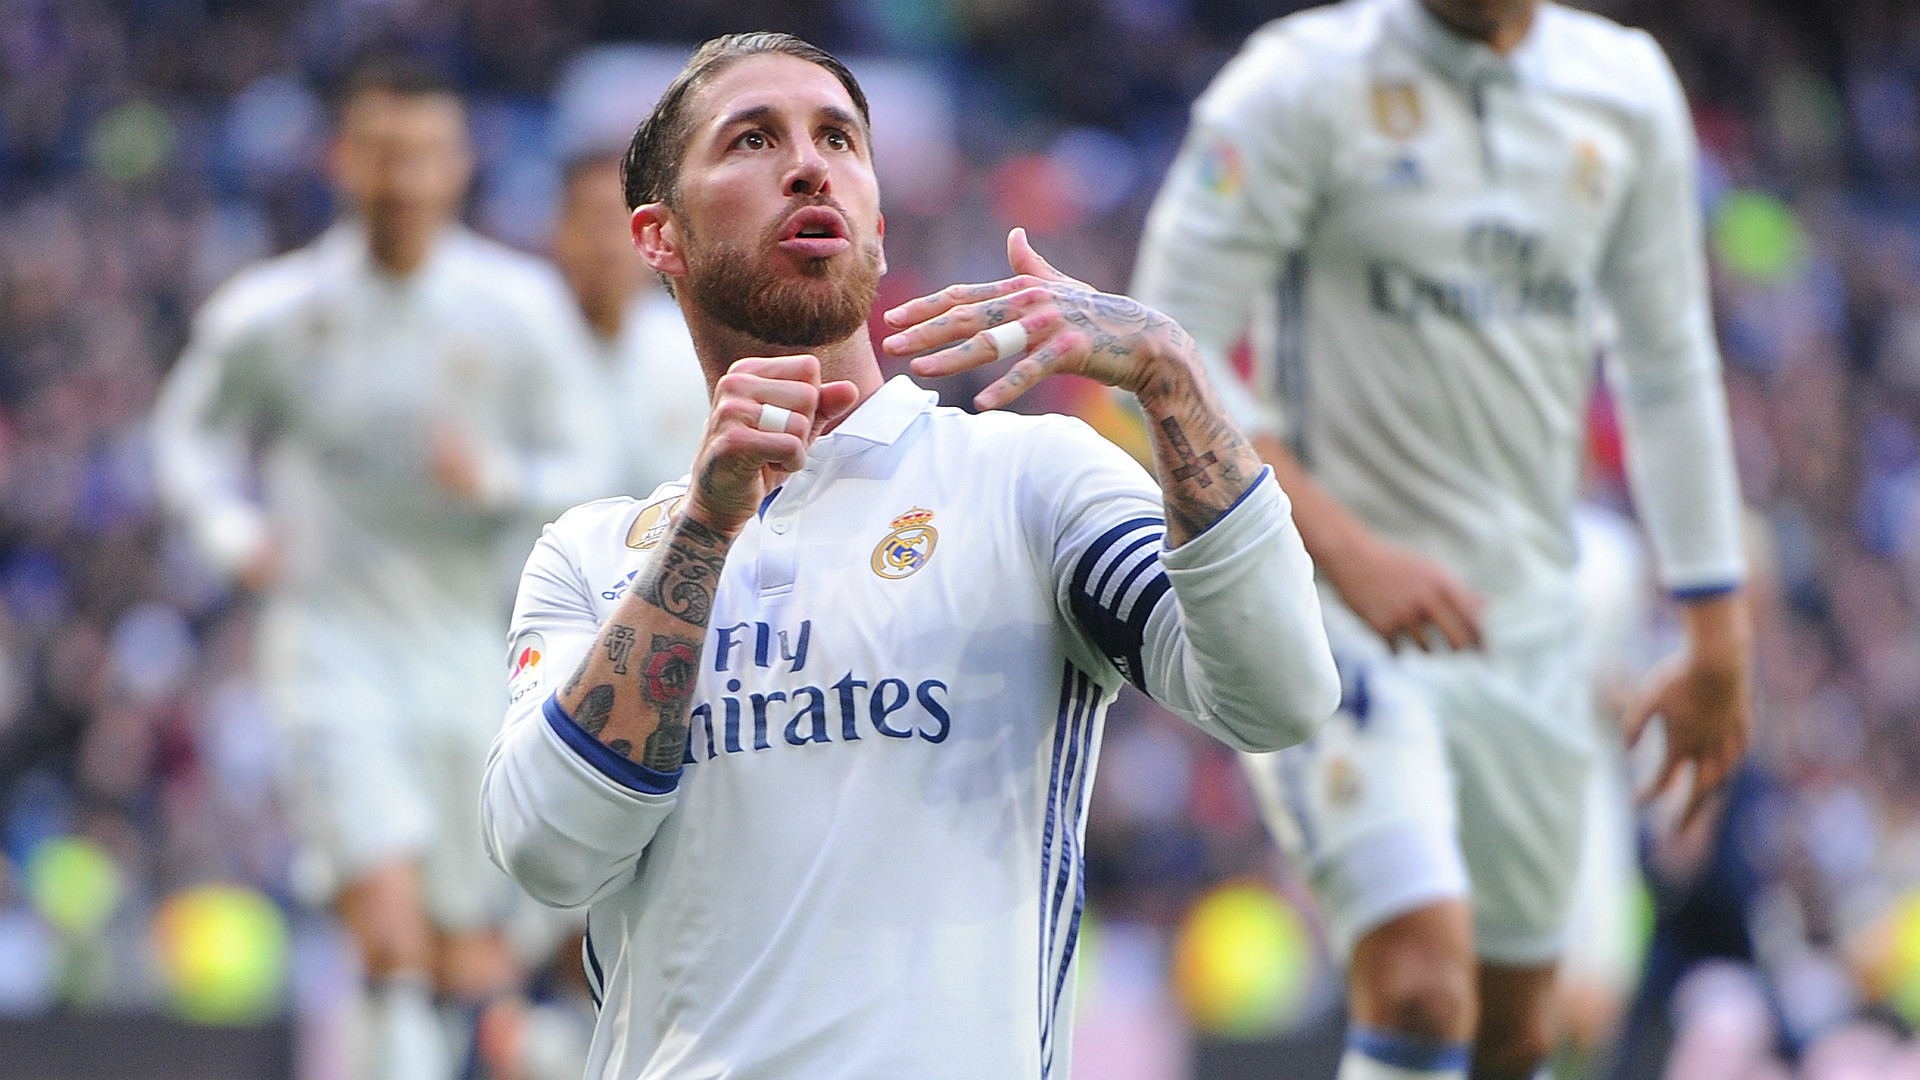 Sergio Ramos 2018 Wallpaper Hd 83 Pictures